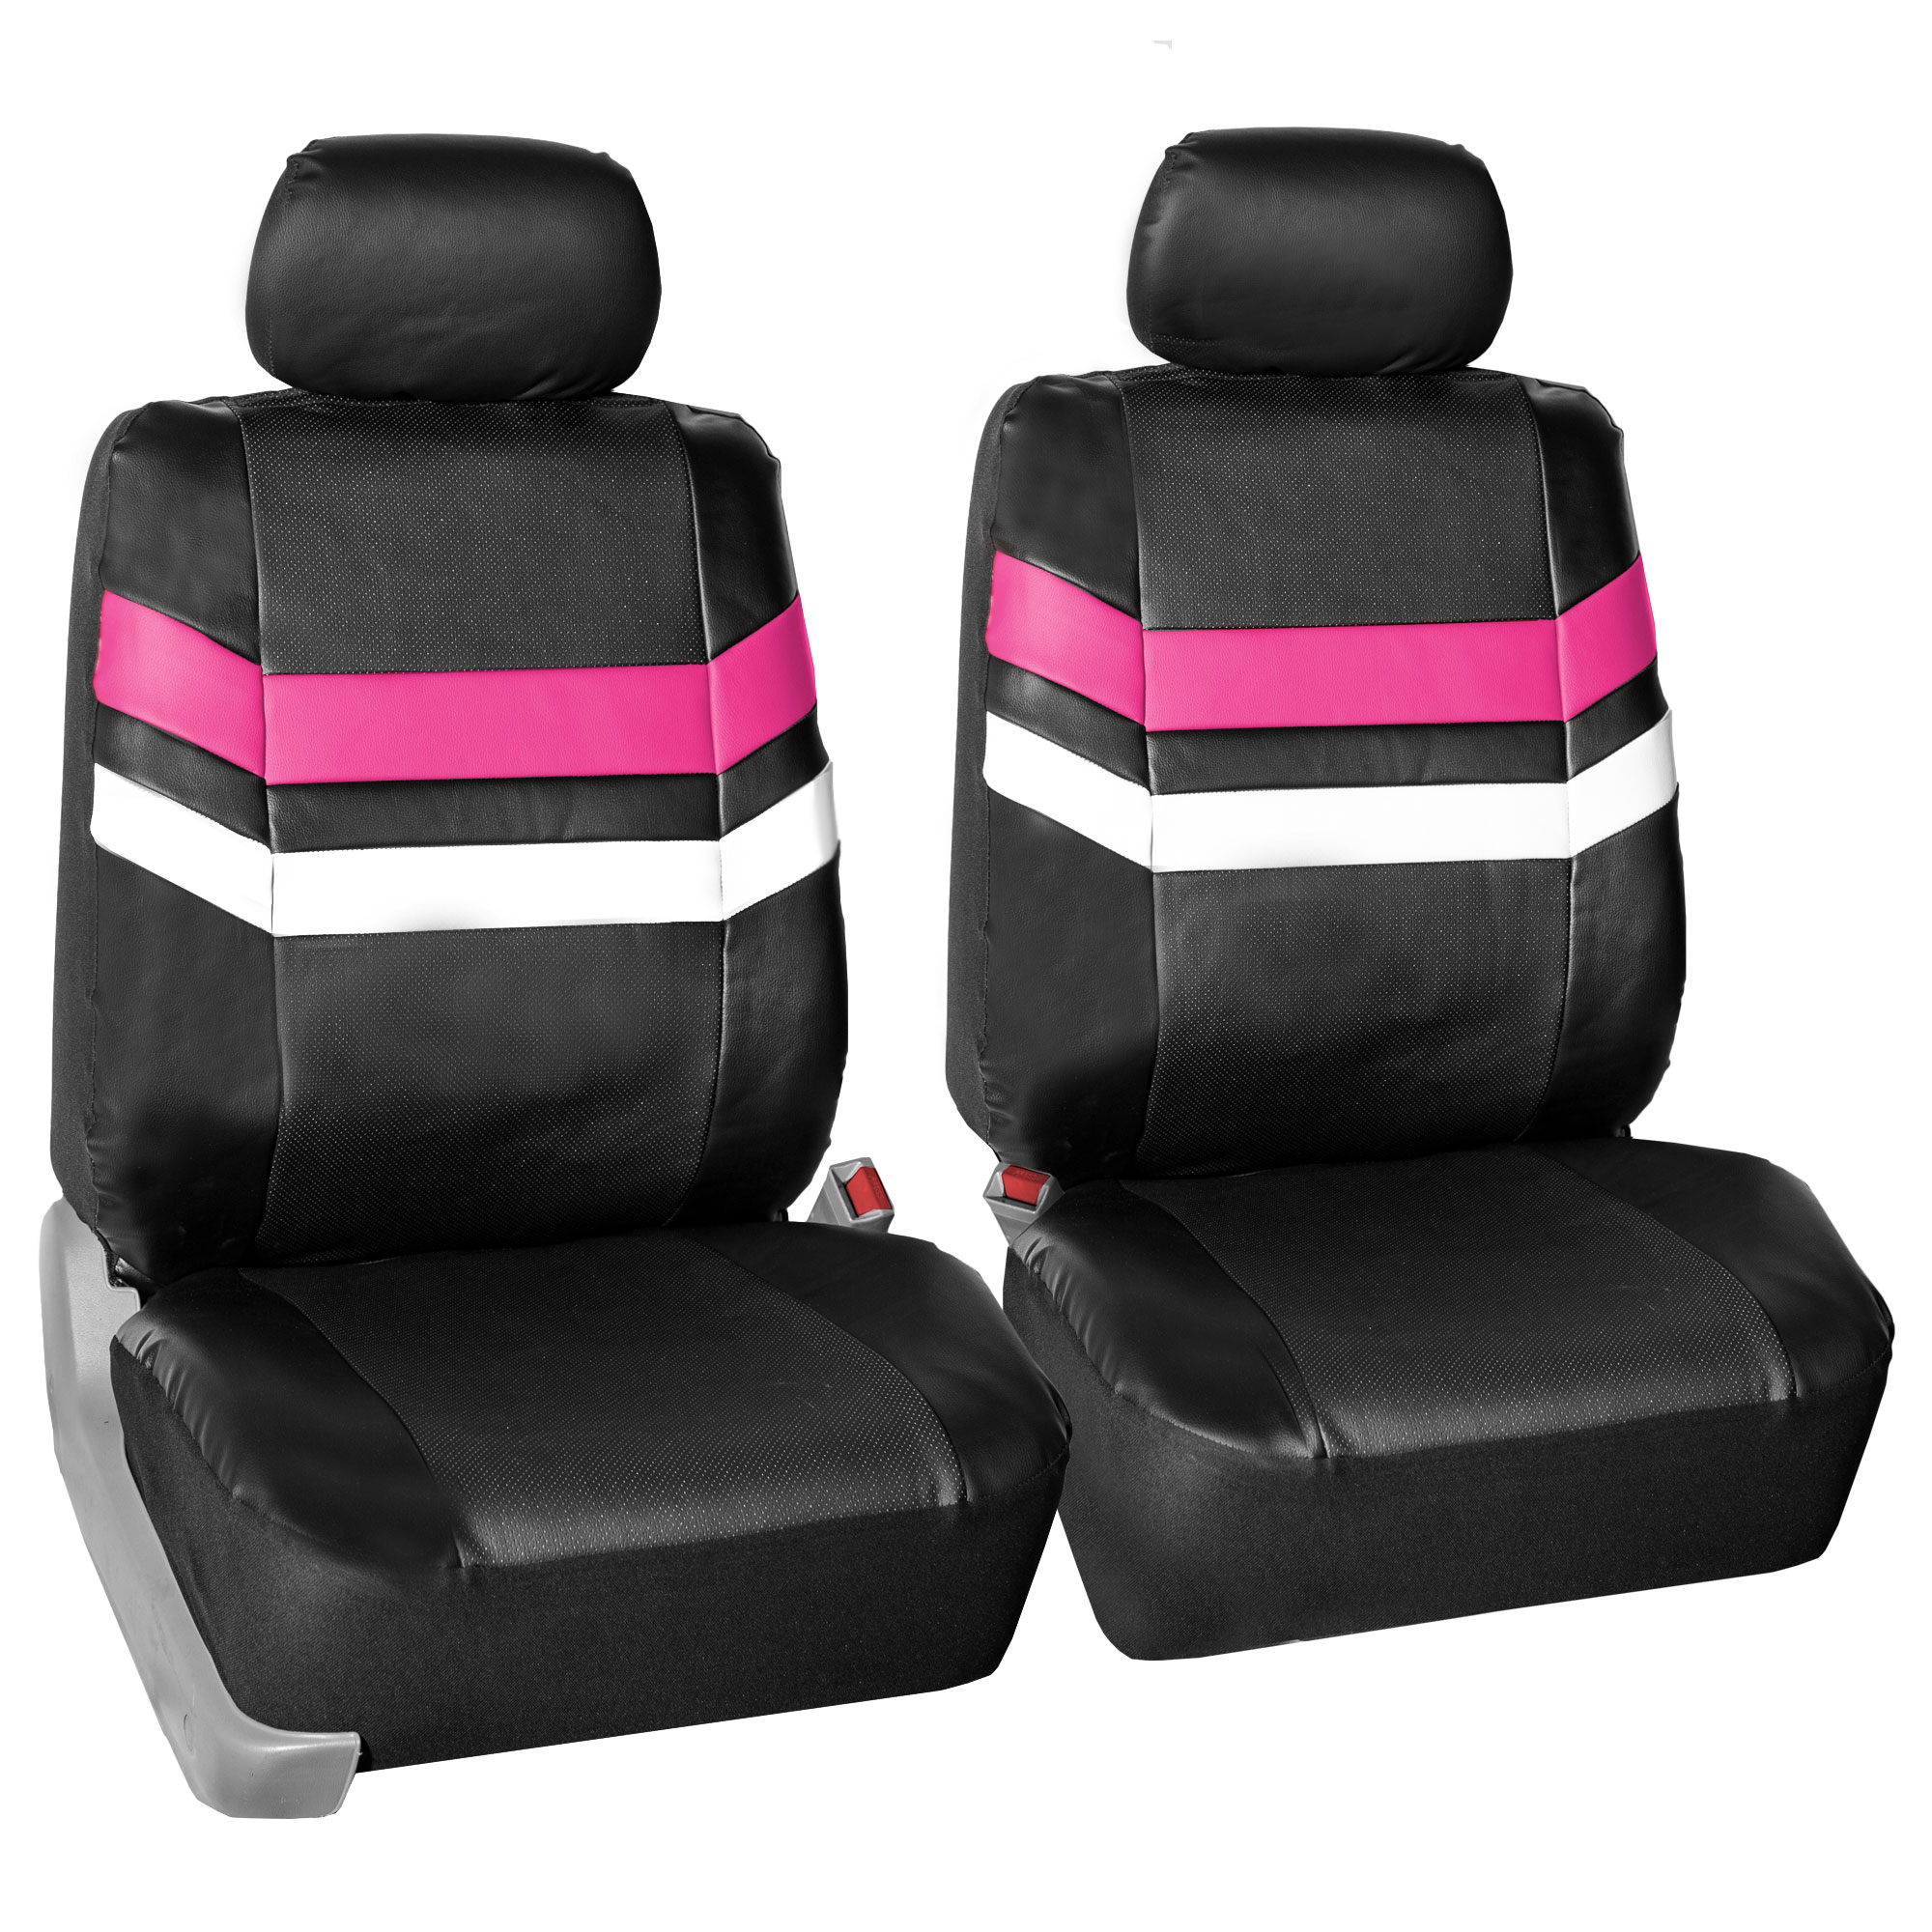 Auto Seat Covers PU Leather For Car Van SUV Truck Front